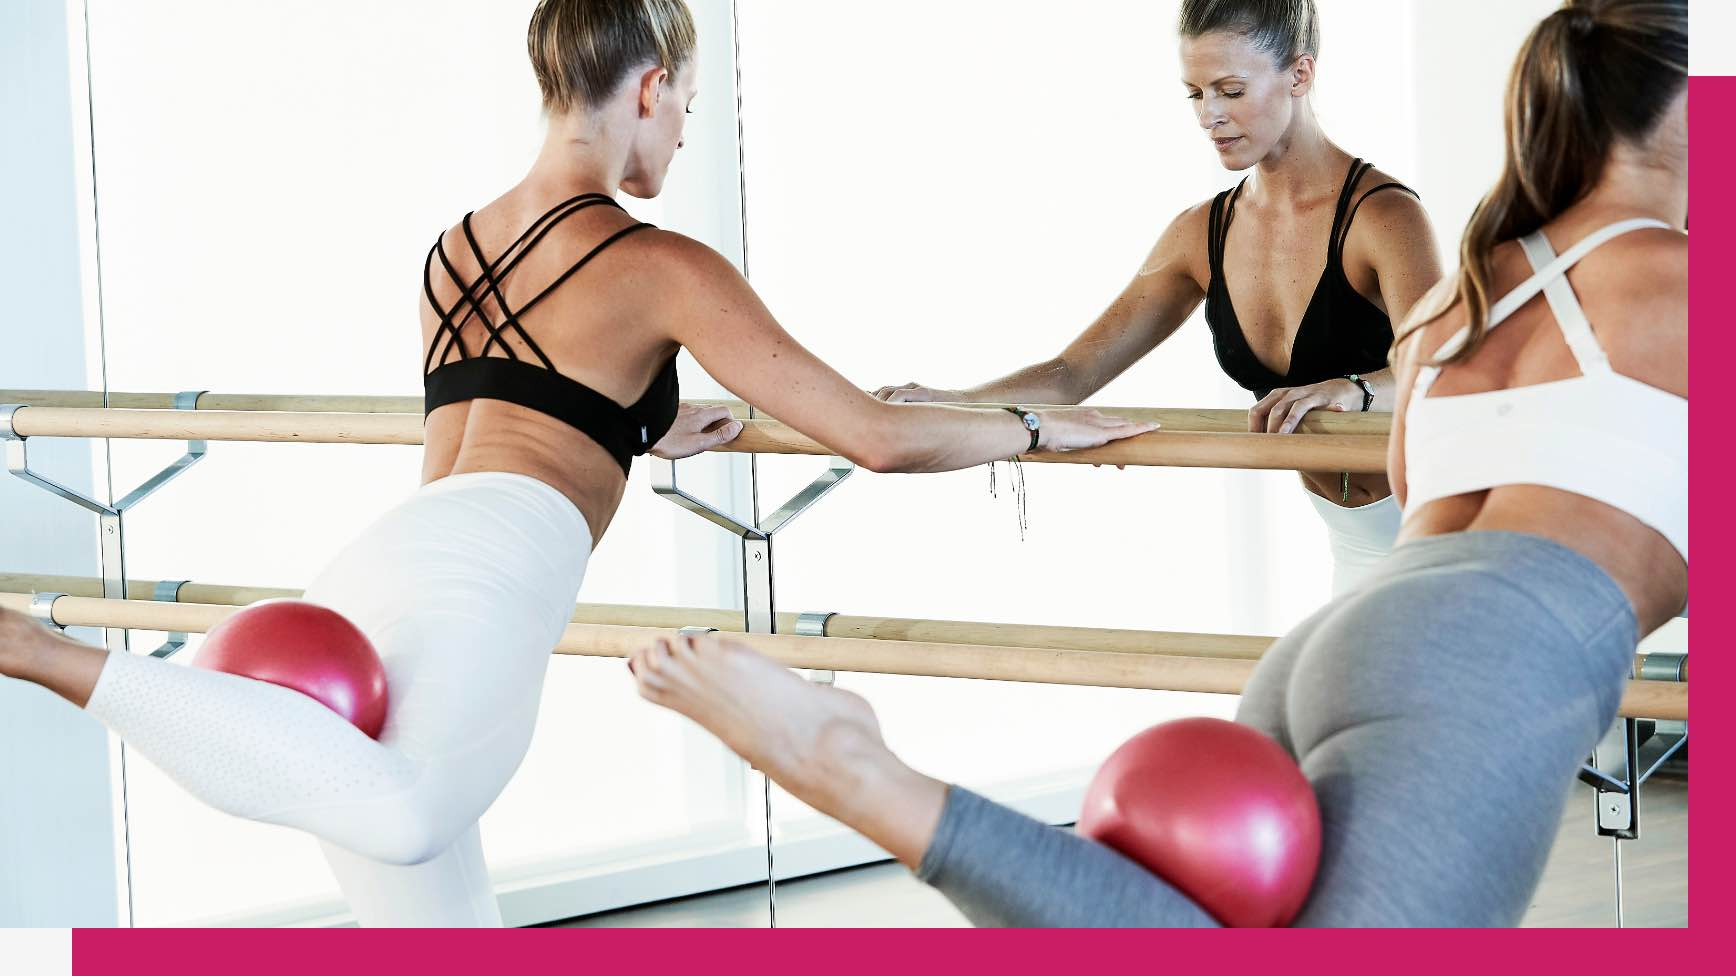 Two women stand facing a mirrored wall holding onto a barre with one leg kicked behind them balancing a red Pilates ball